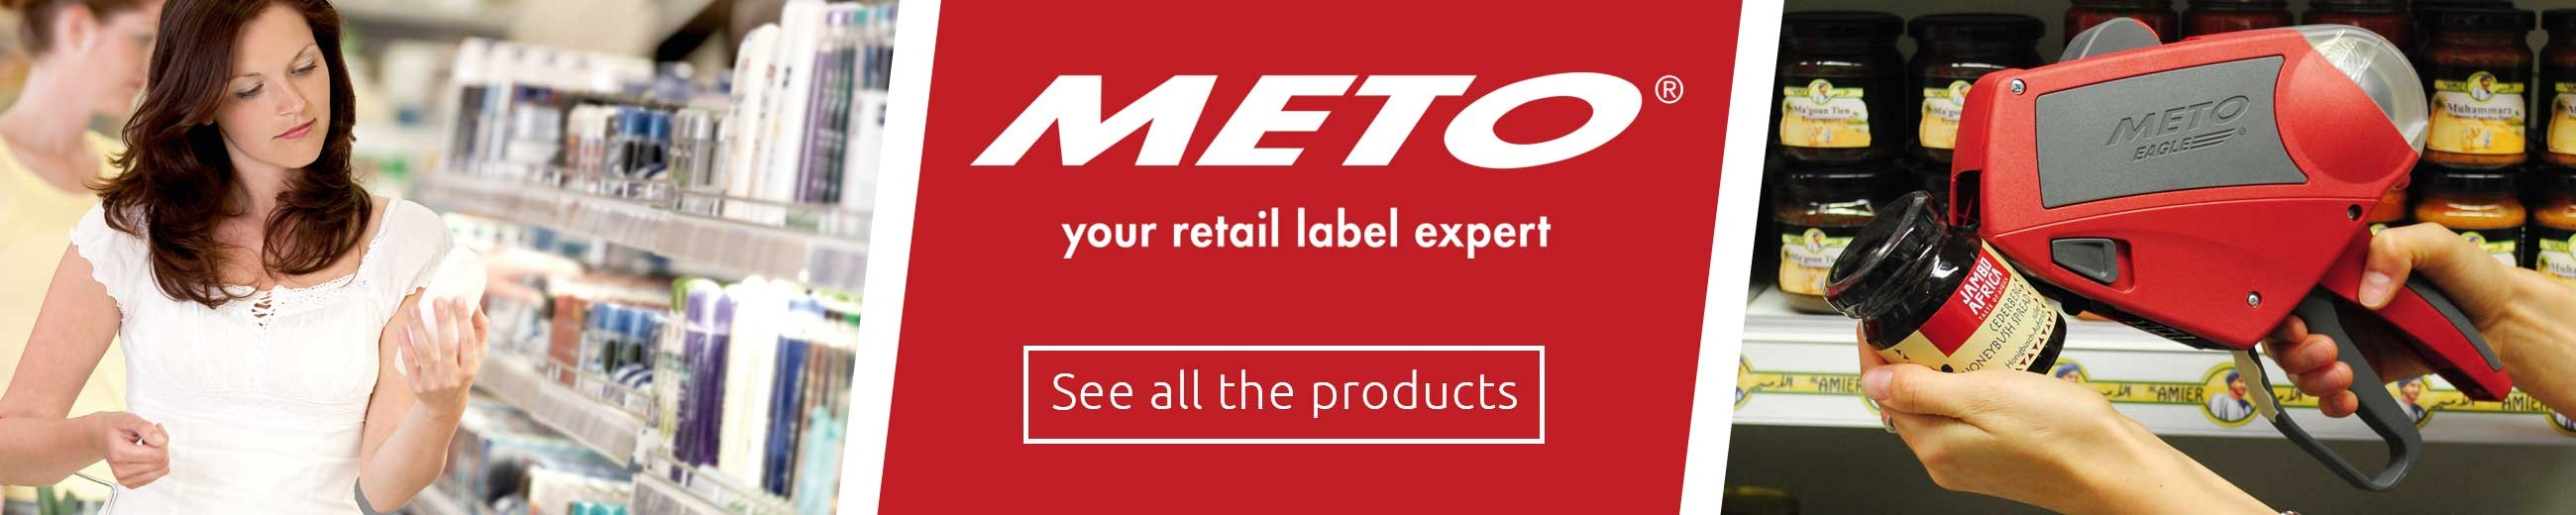 METO - Your retail label expert